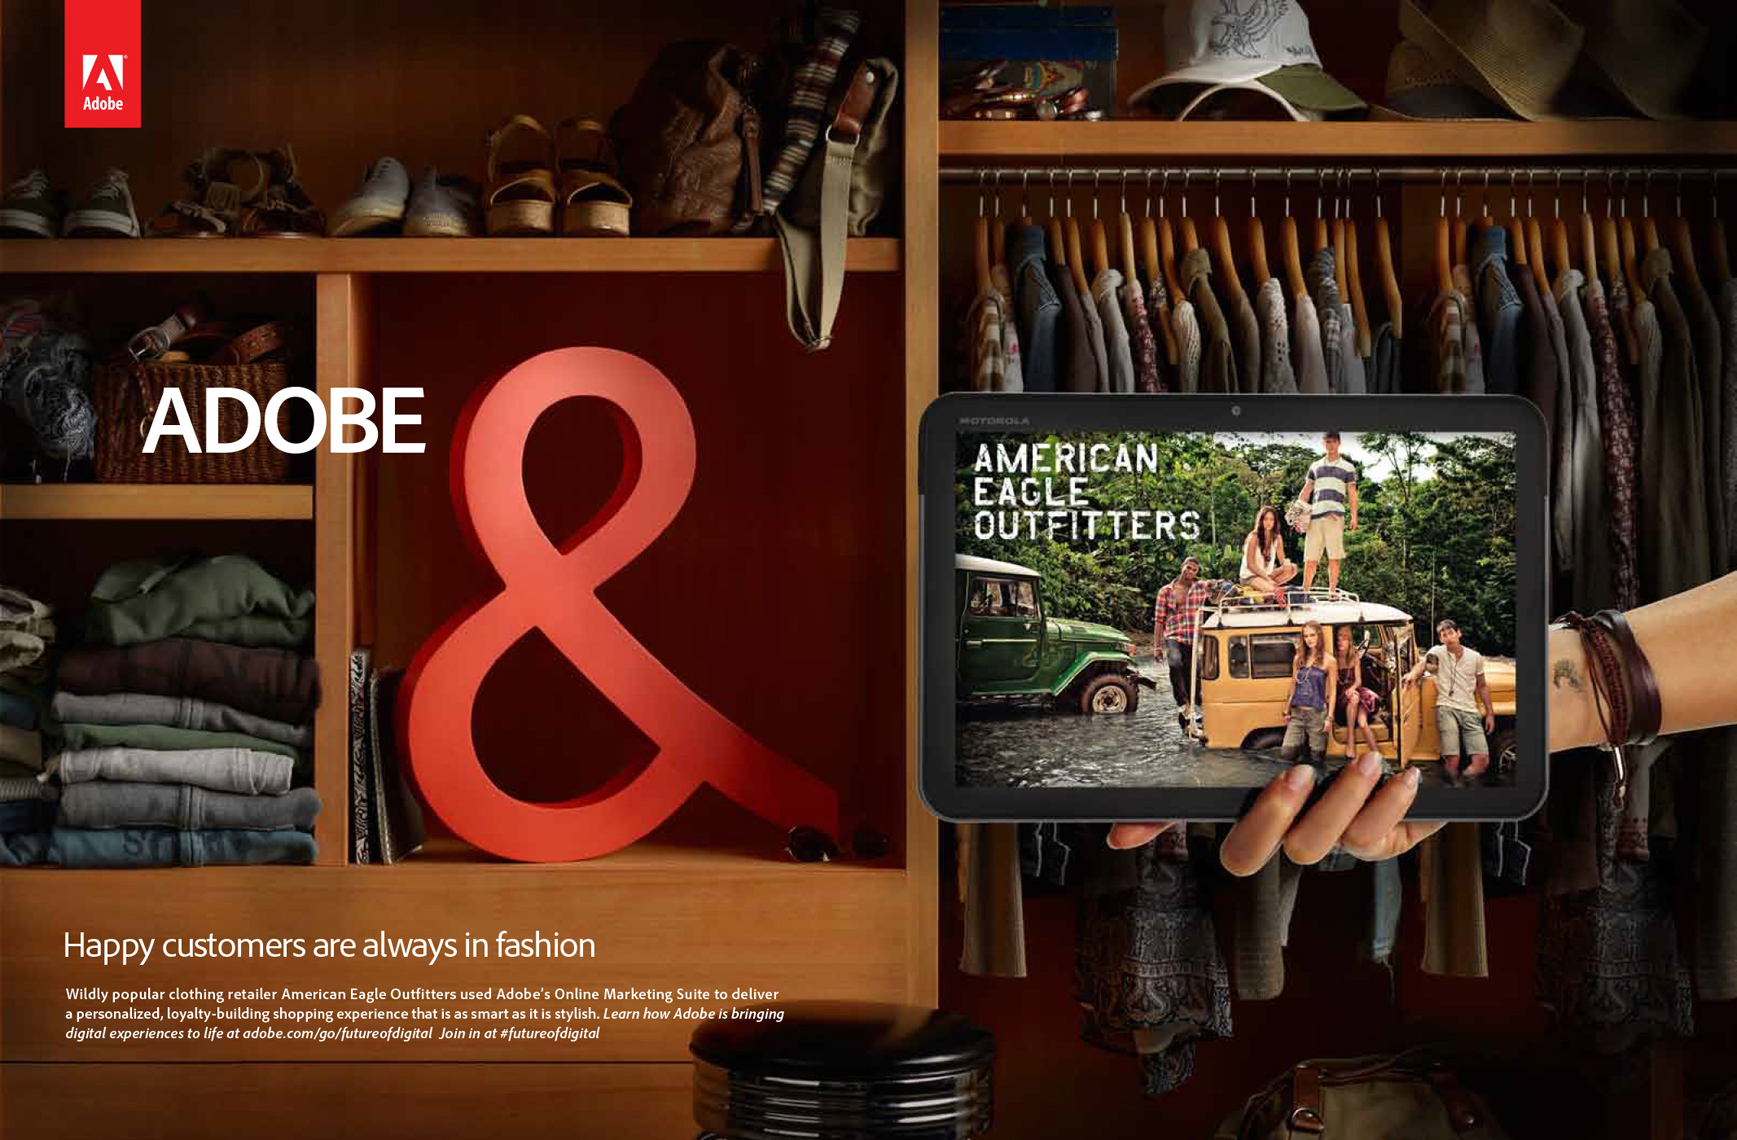 Advertising: Adobe